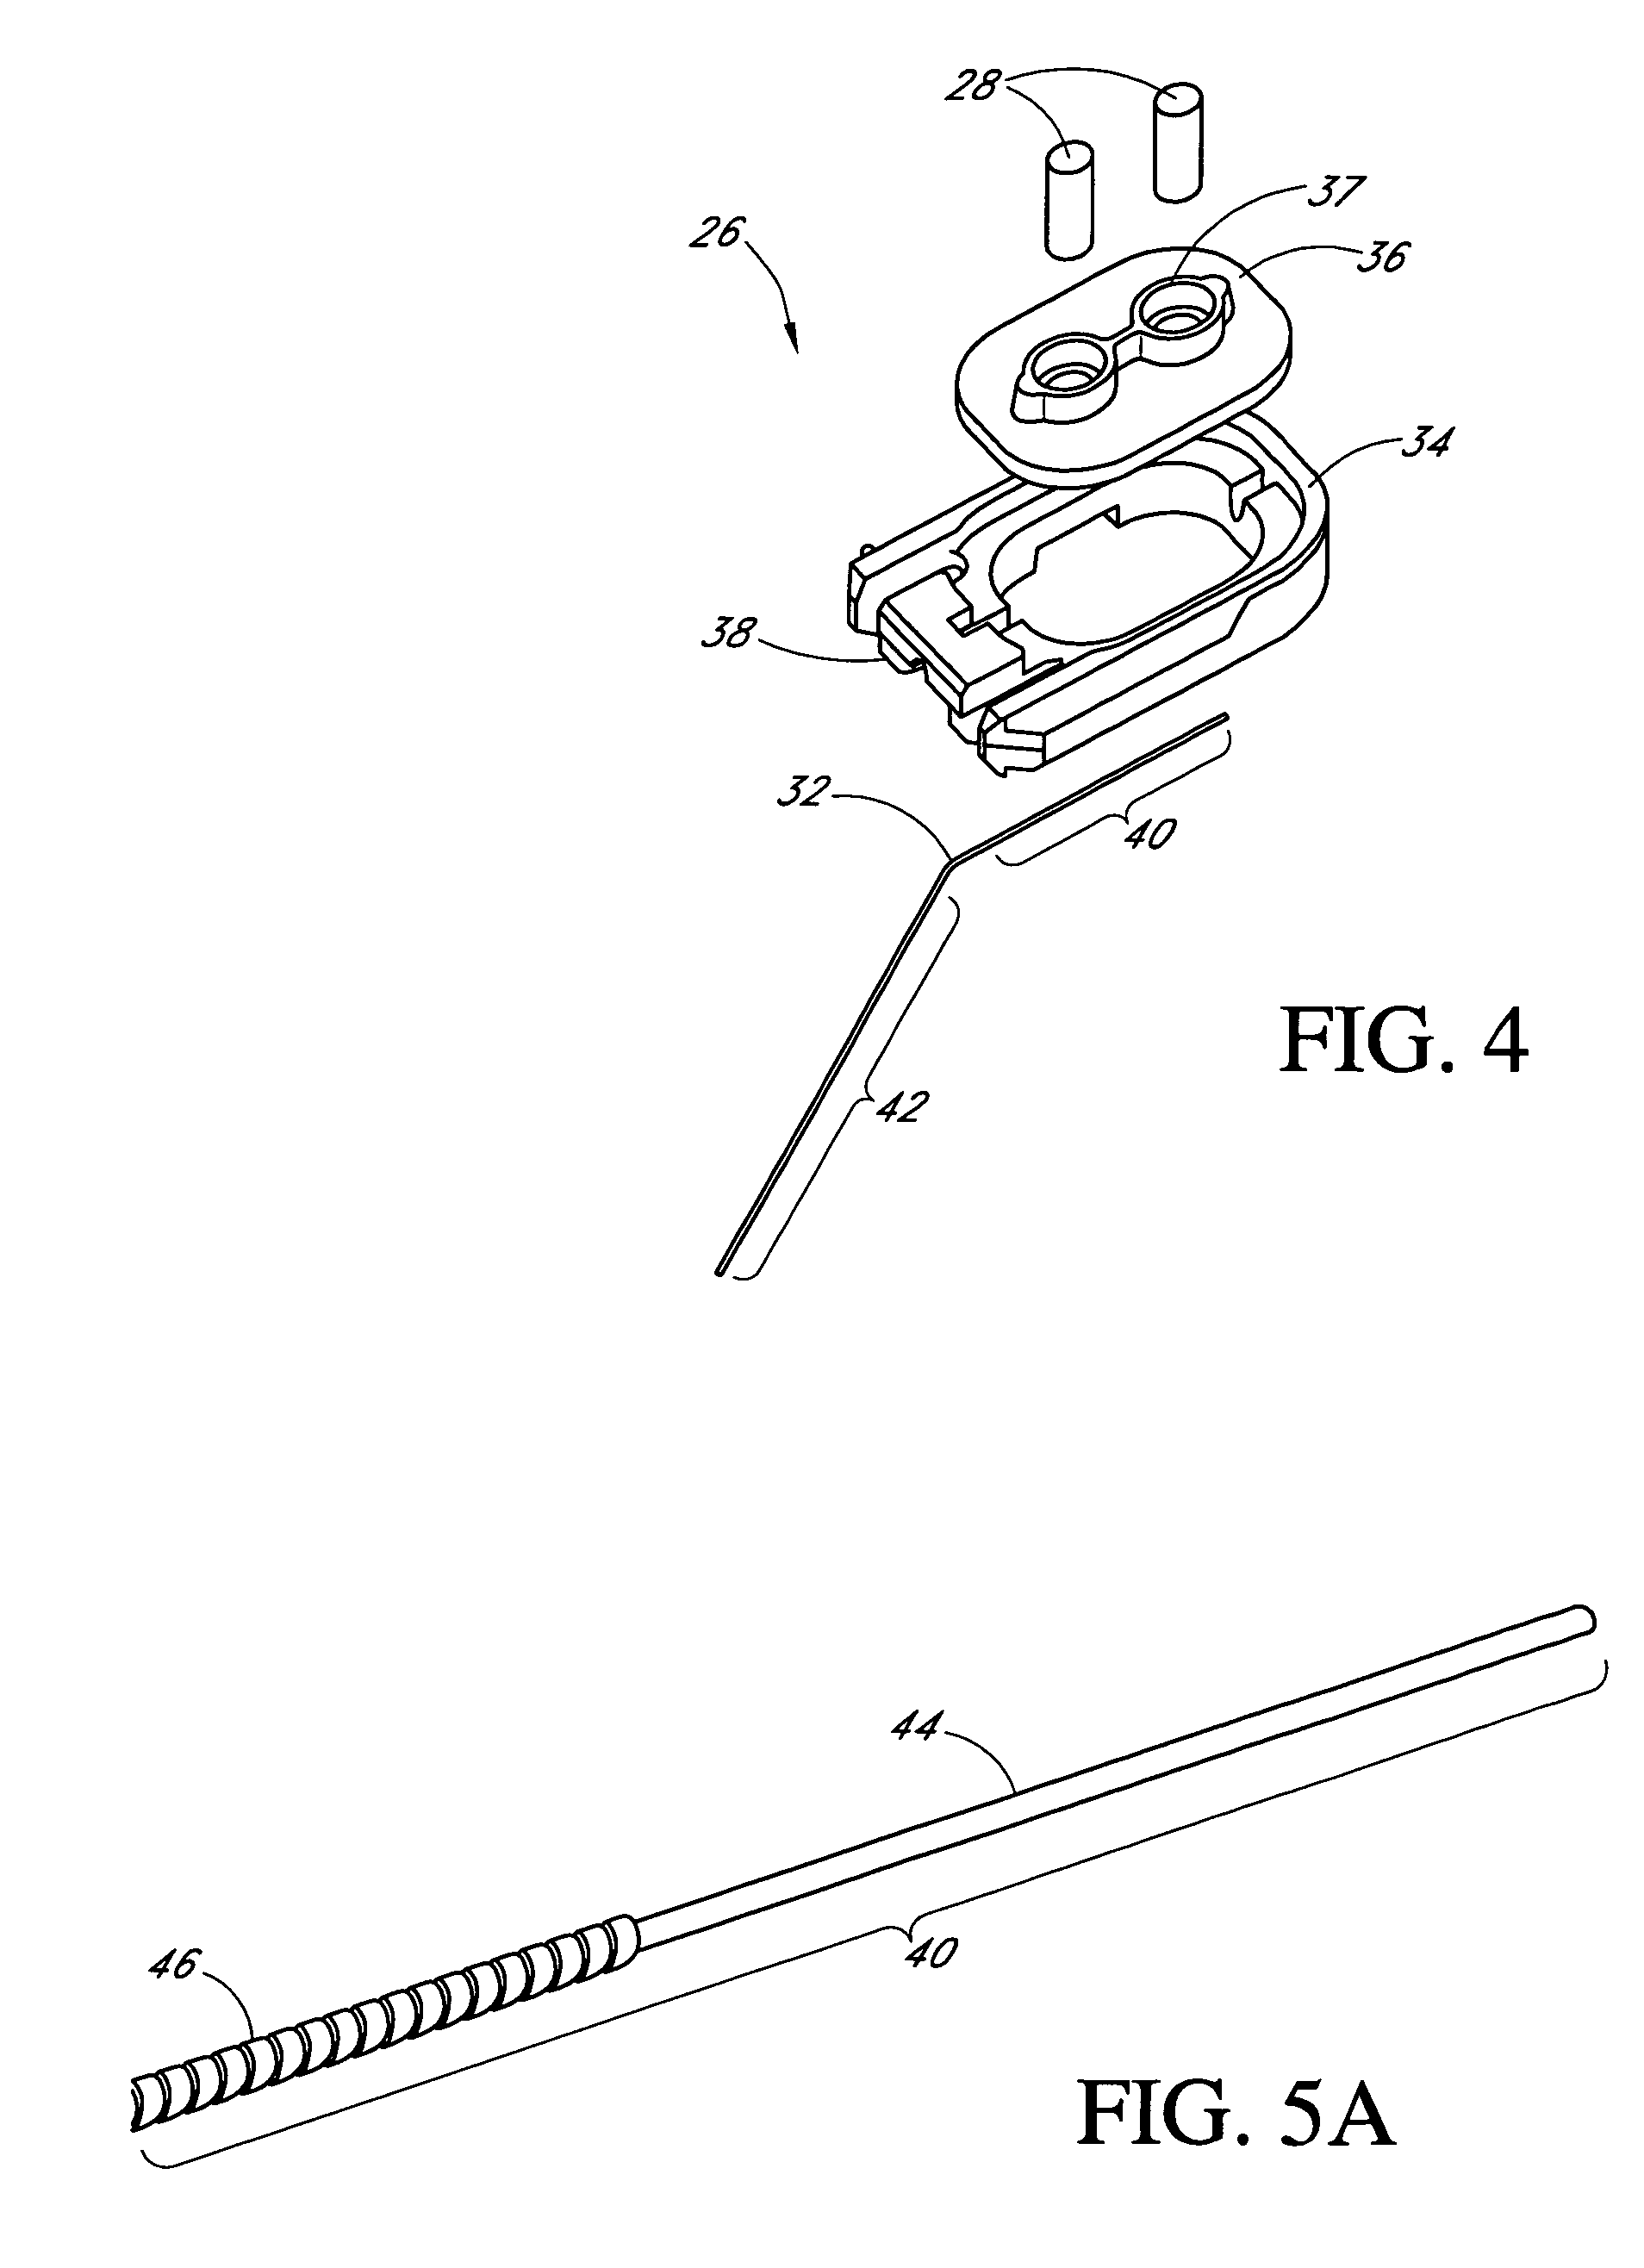 Patent Us 7885697 B2 Converter Connected To Measure Ratiometric Values Of Quad Load Cells